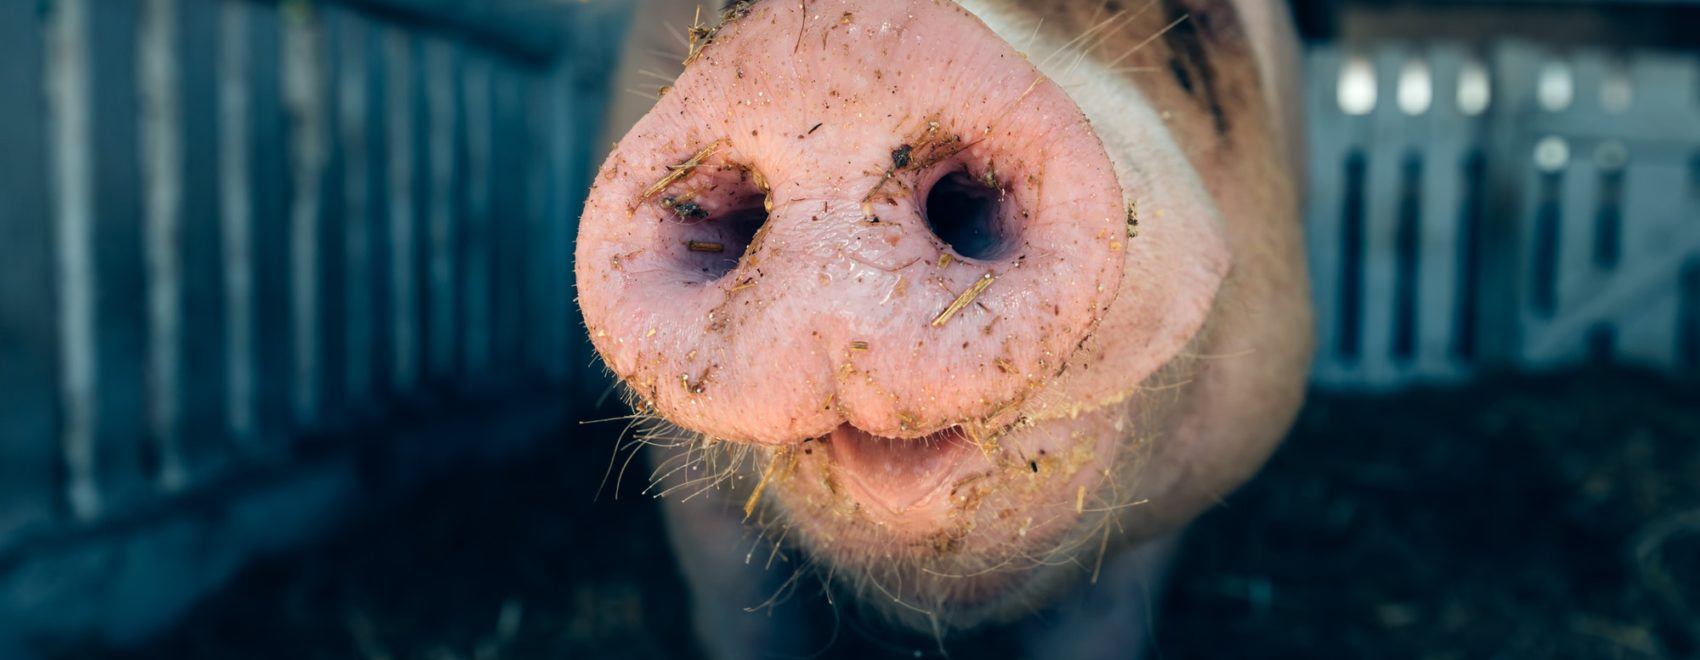 Pig nose in pigsty, close up